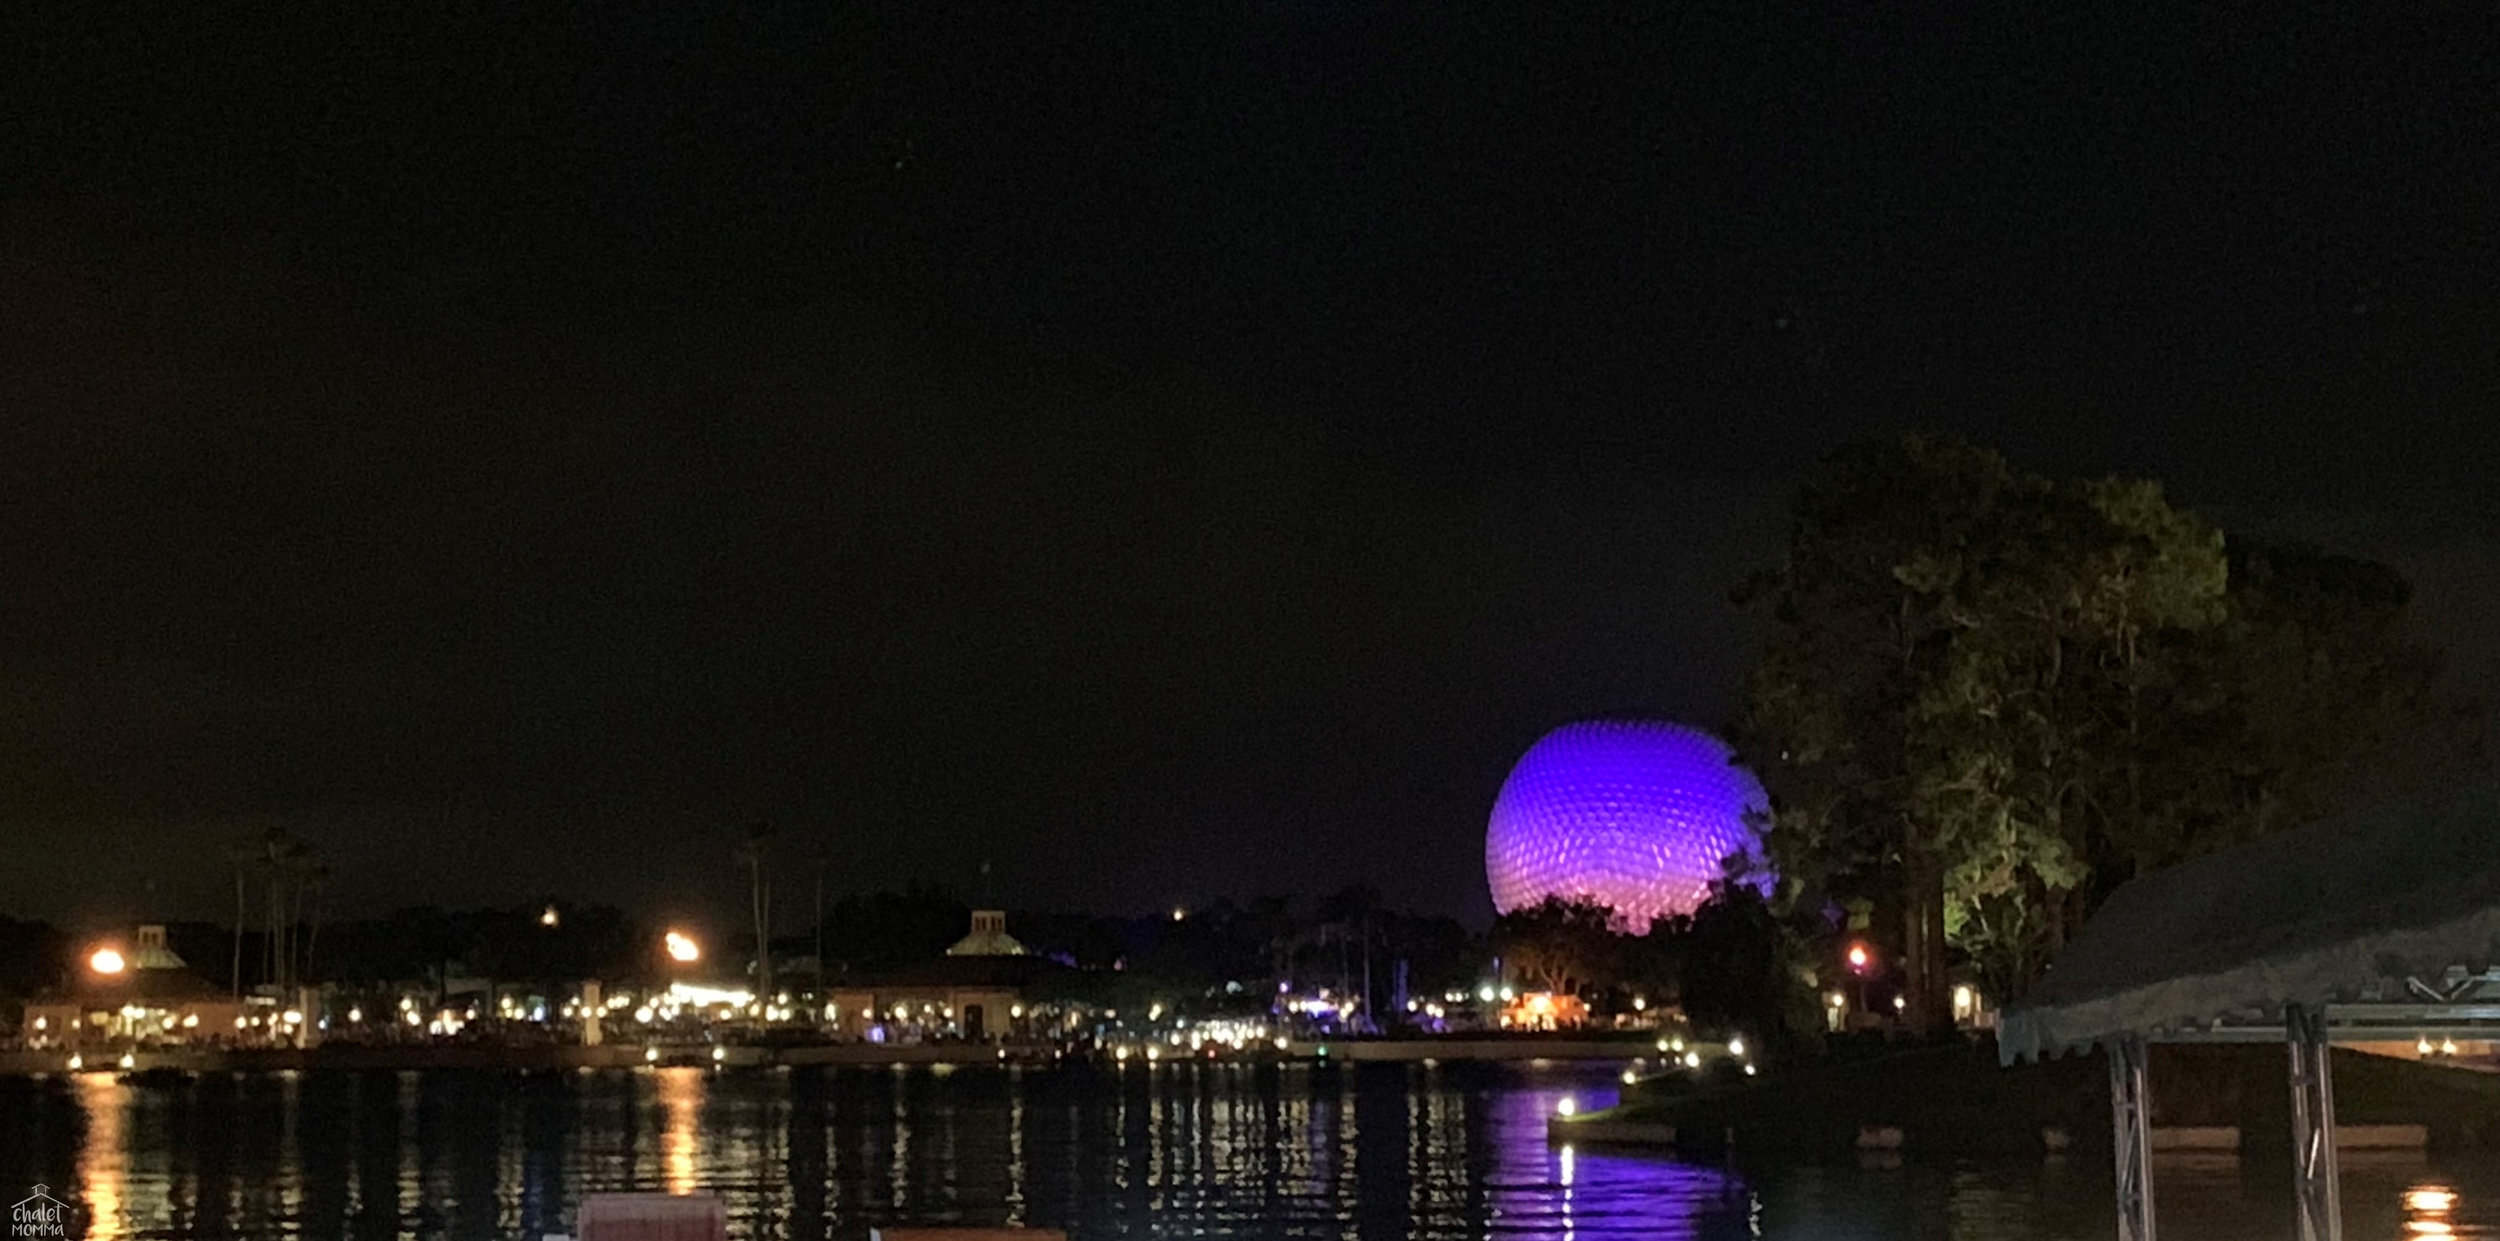 Epcot totally stole my heart!